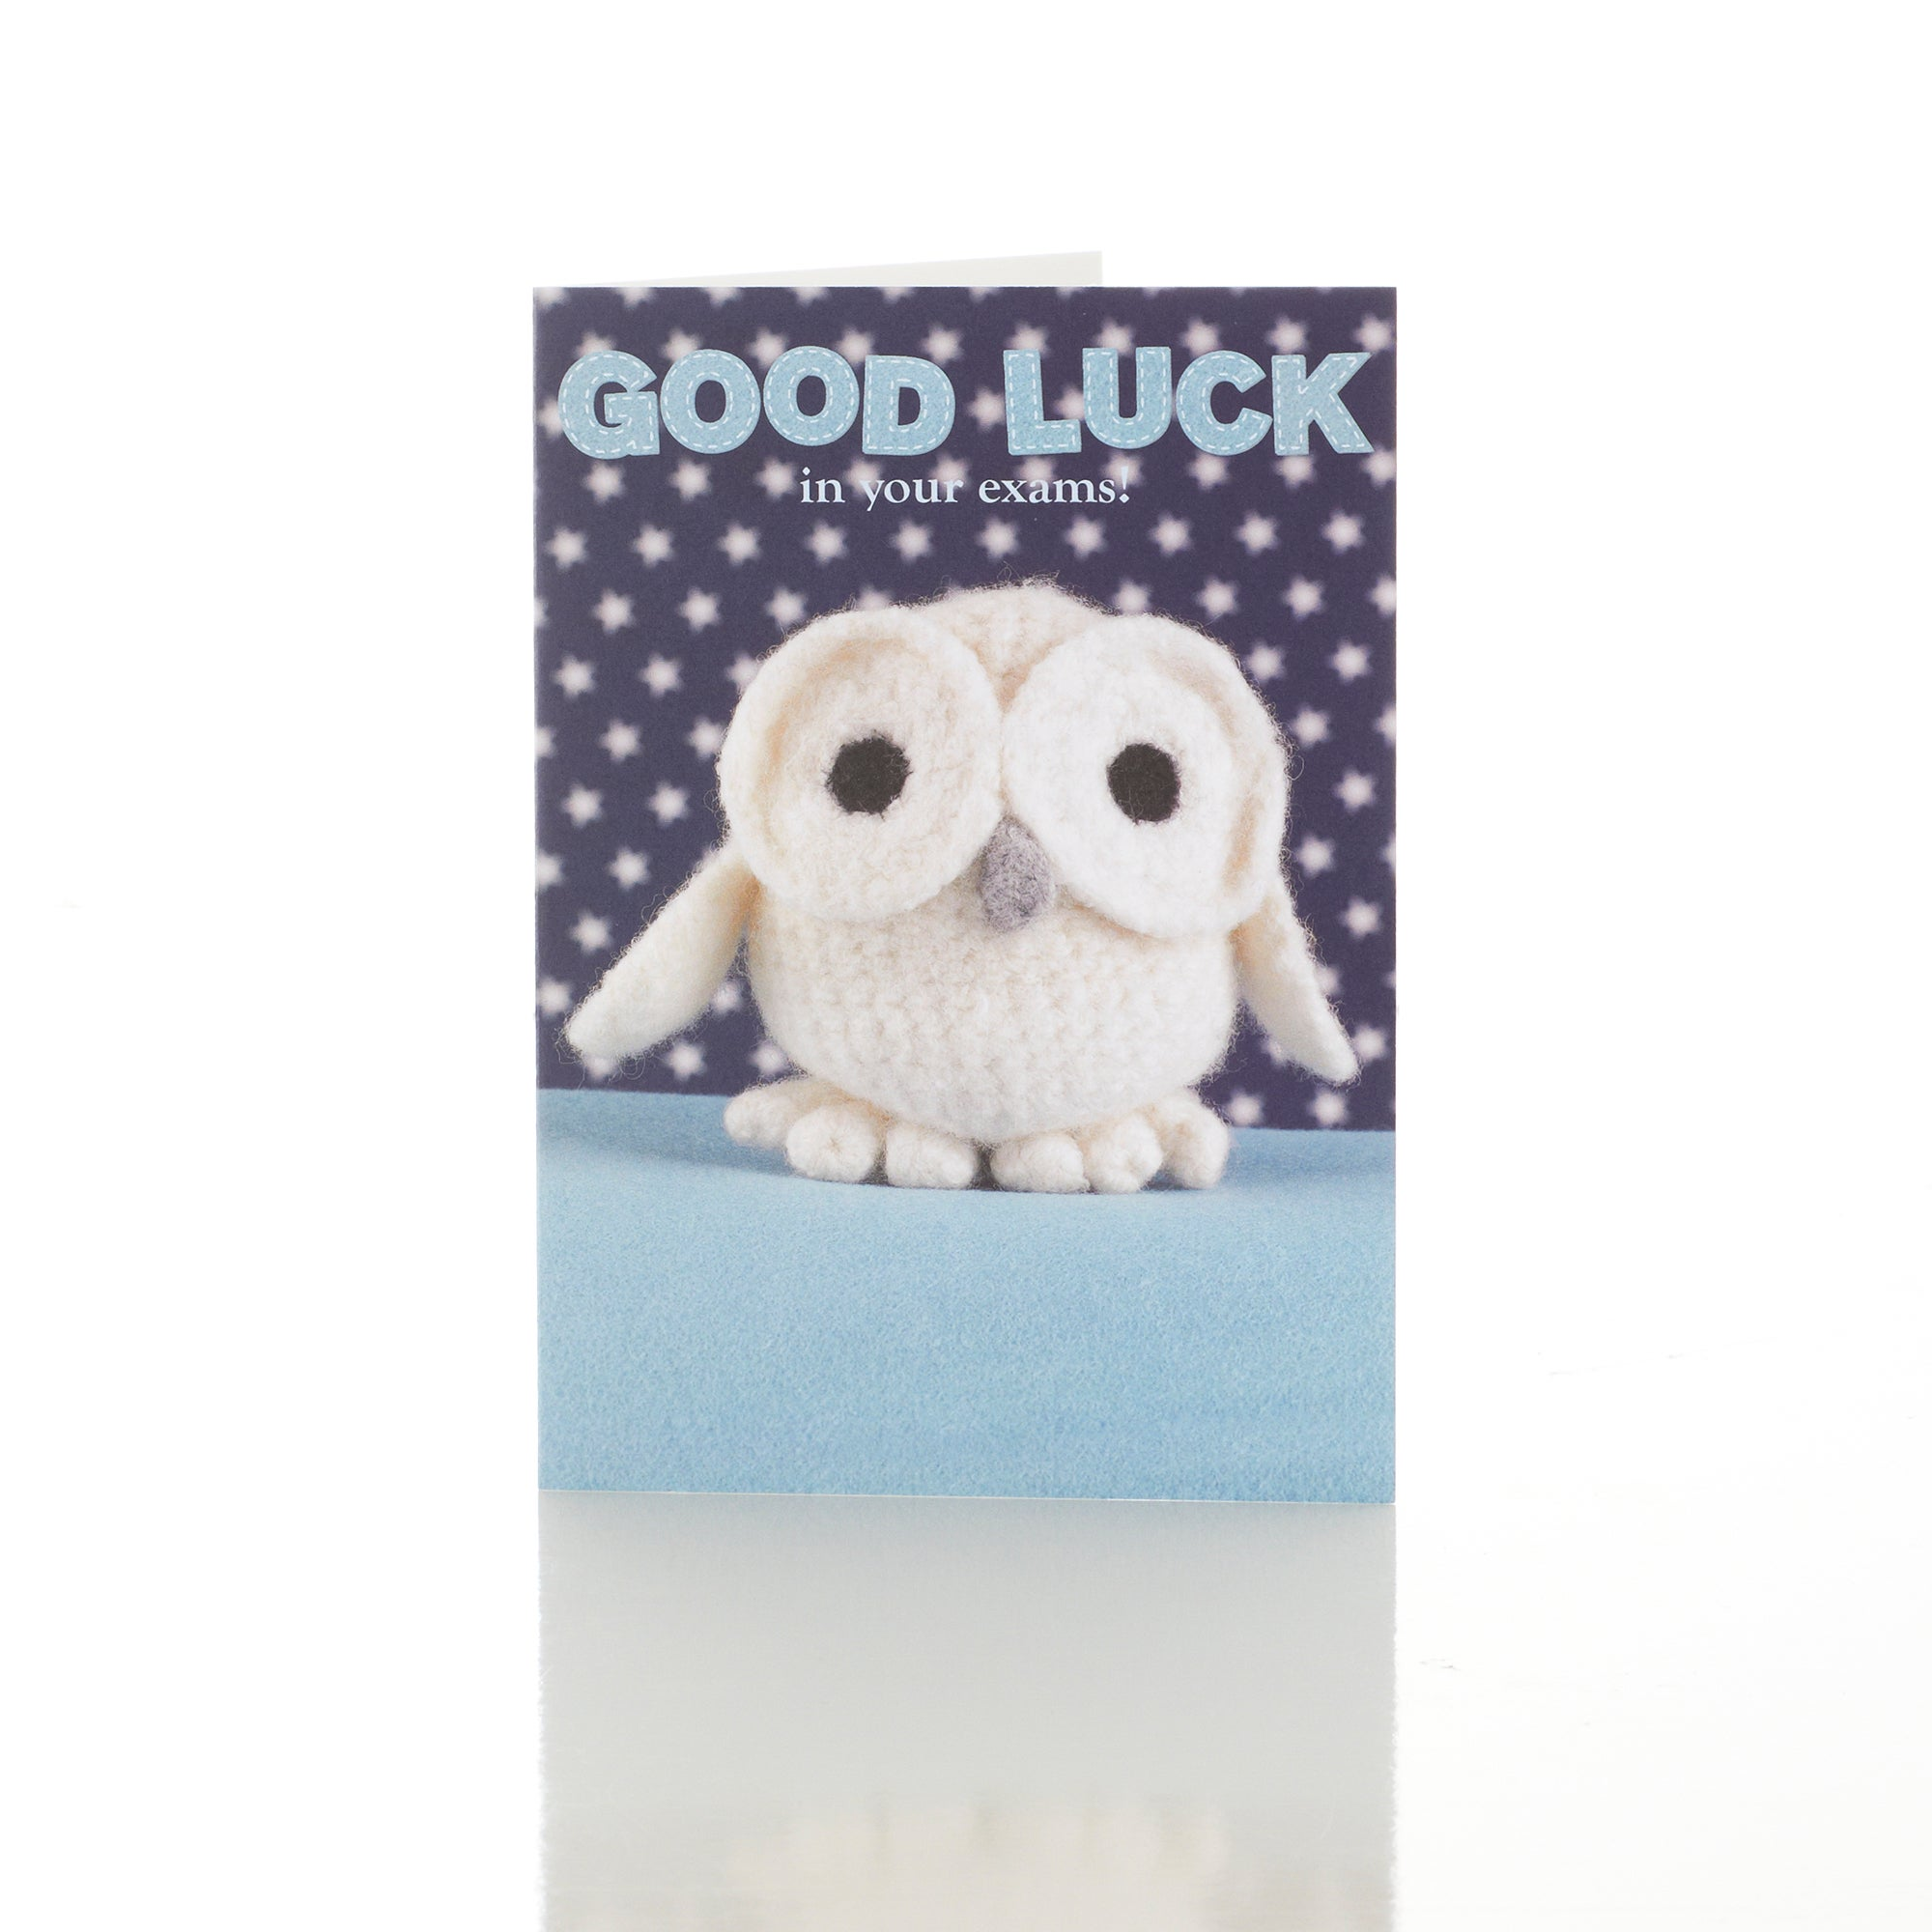 Born to Stitch Owl Good Luck Exam Card